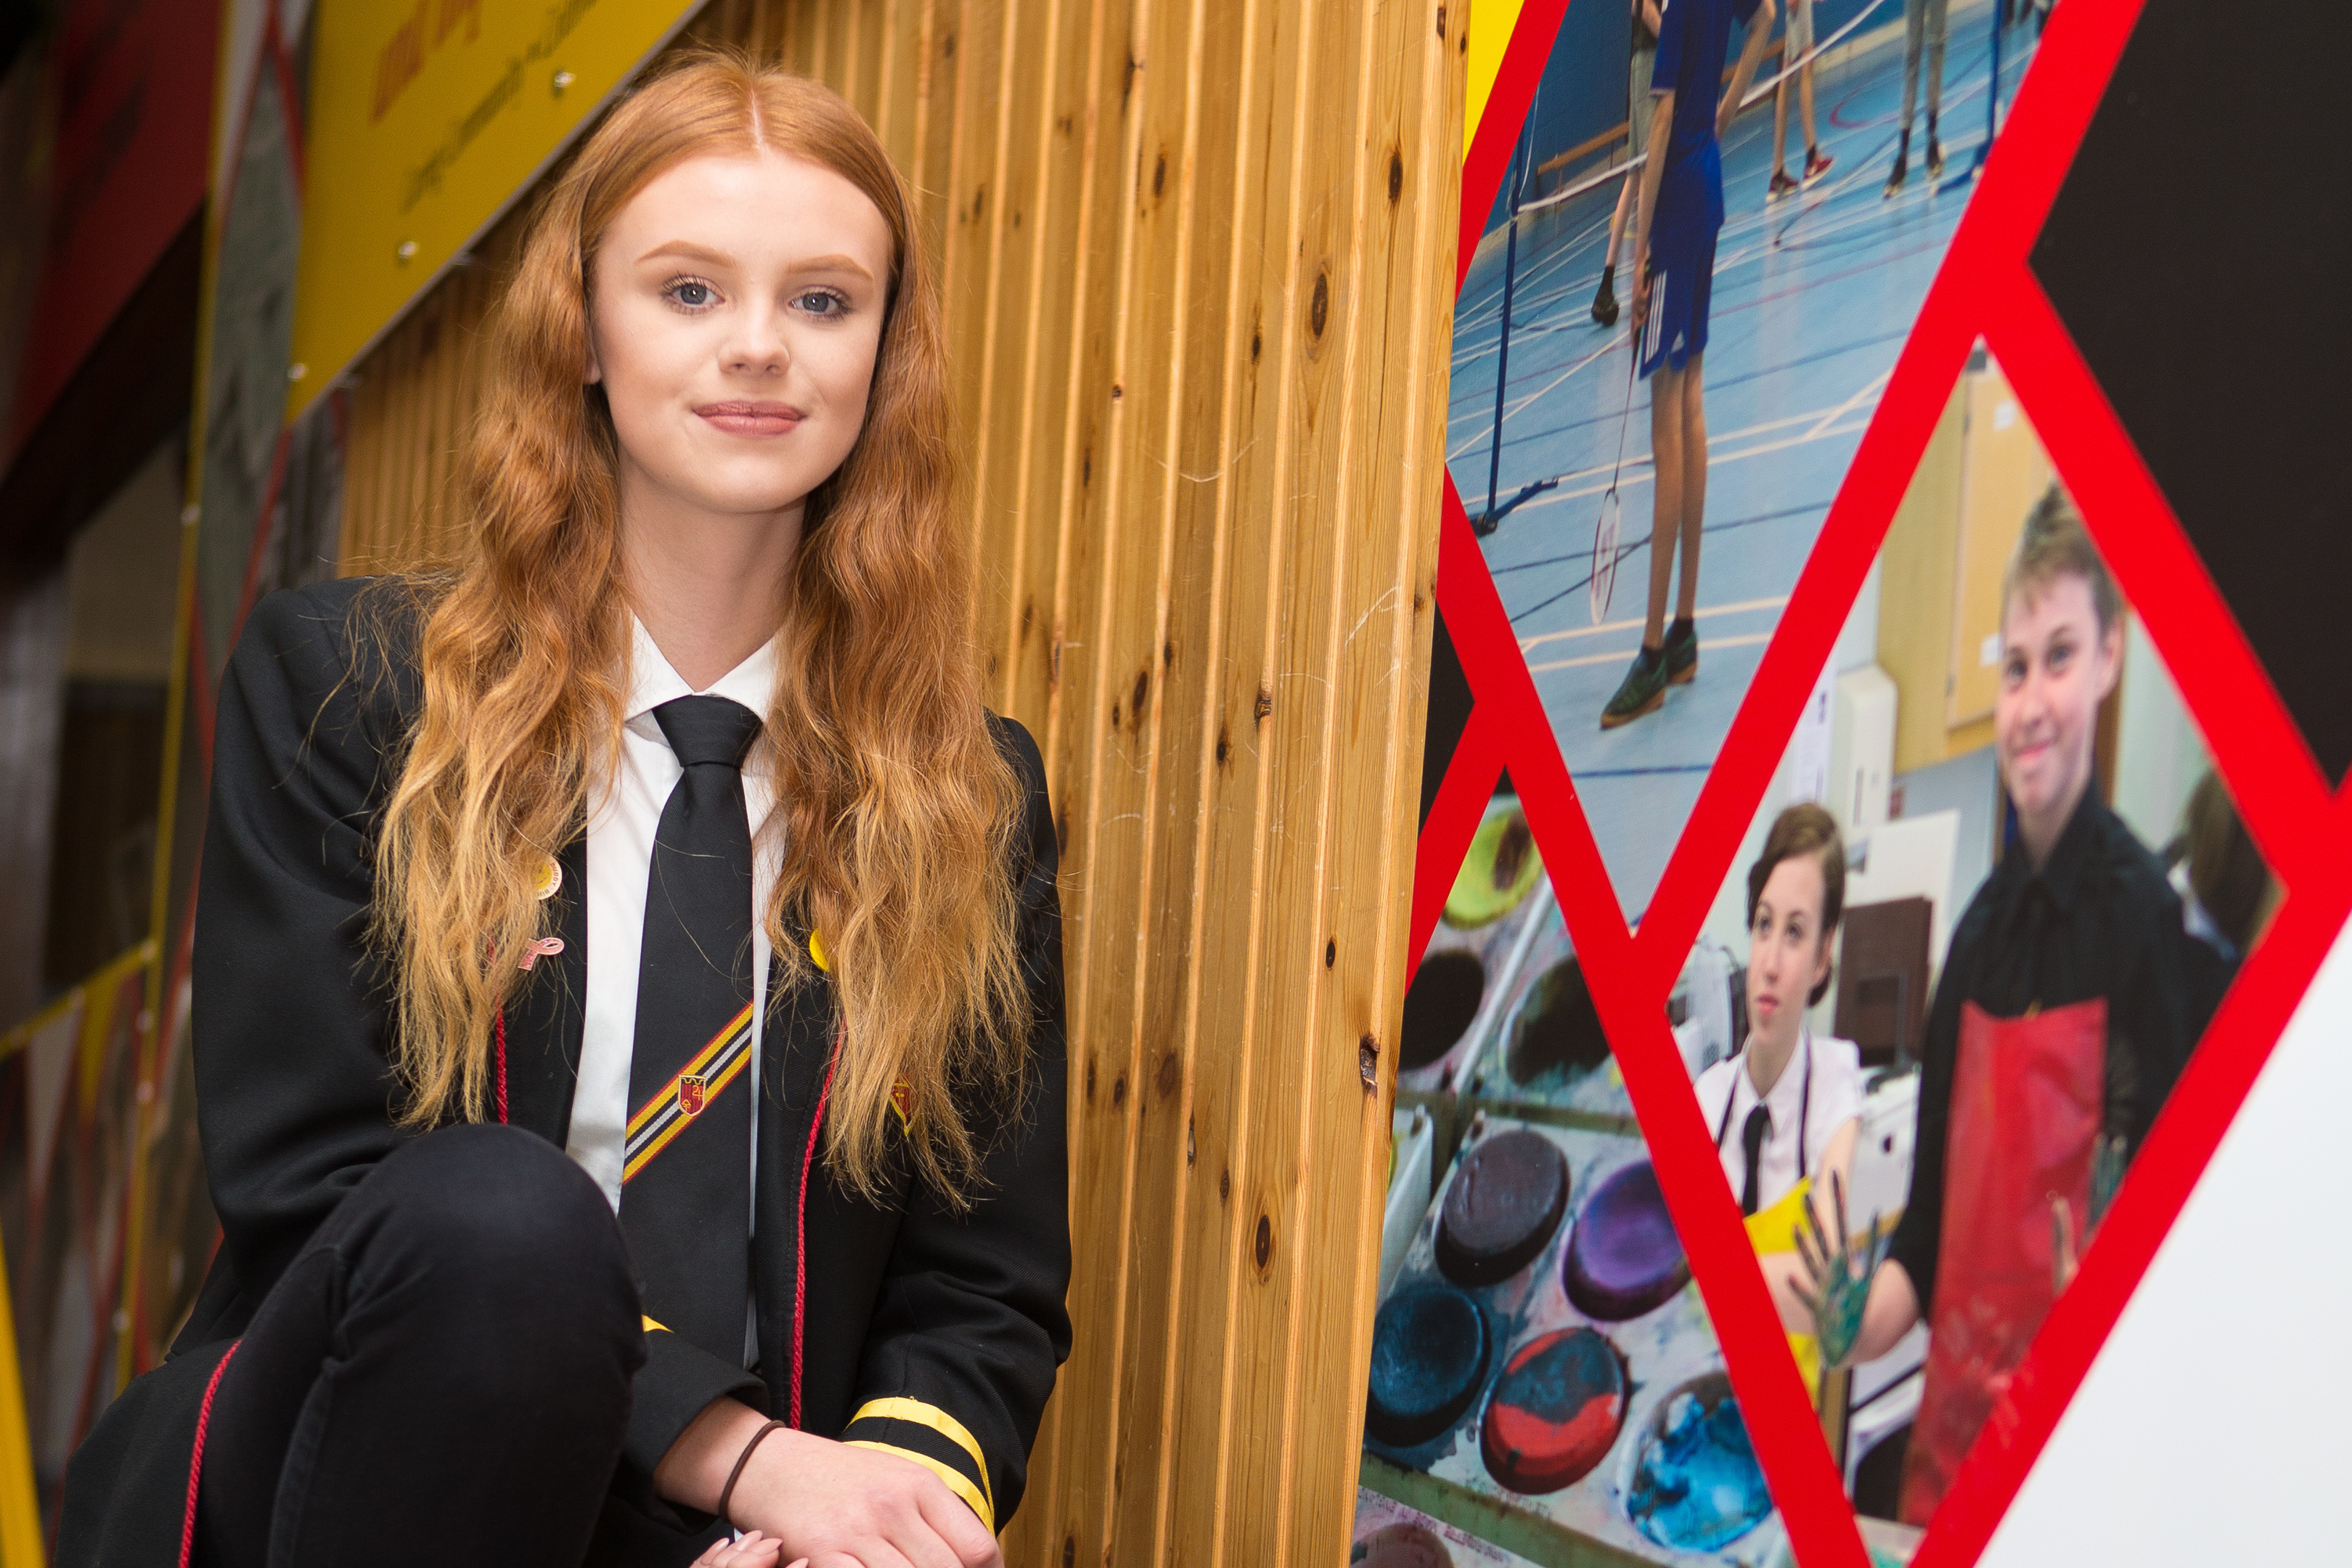 Olivia McKendrick-Brown at the artwork she created for Glenrothes High School 50th Anniversary.